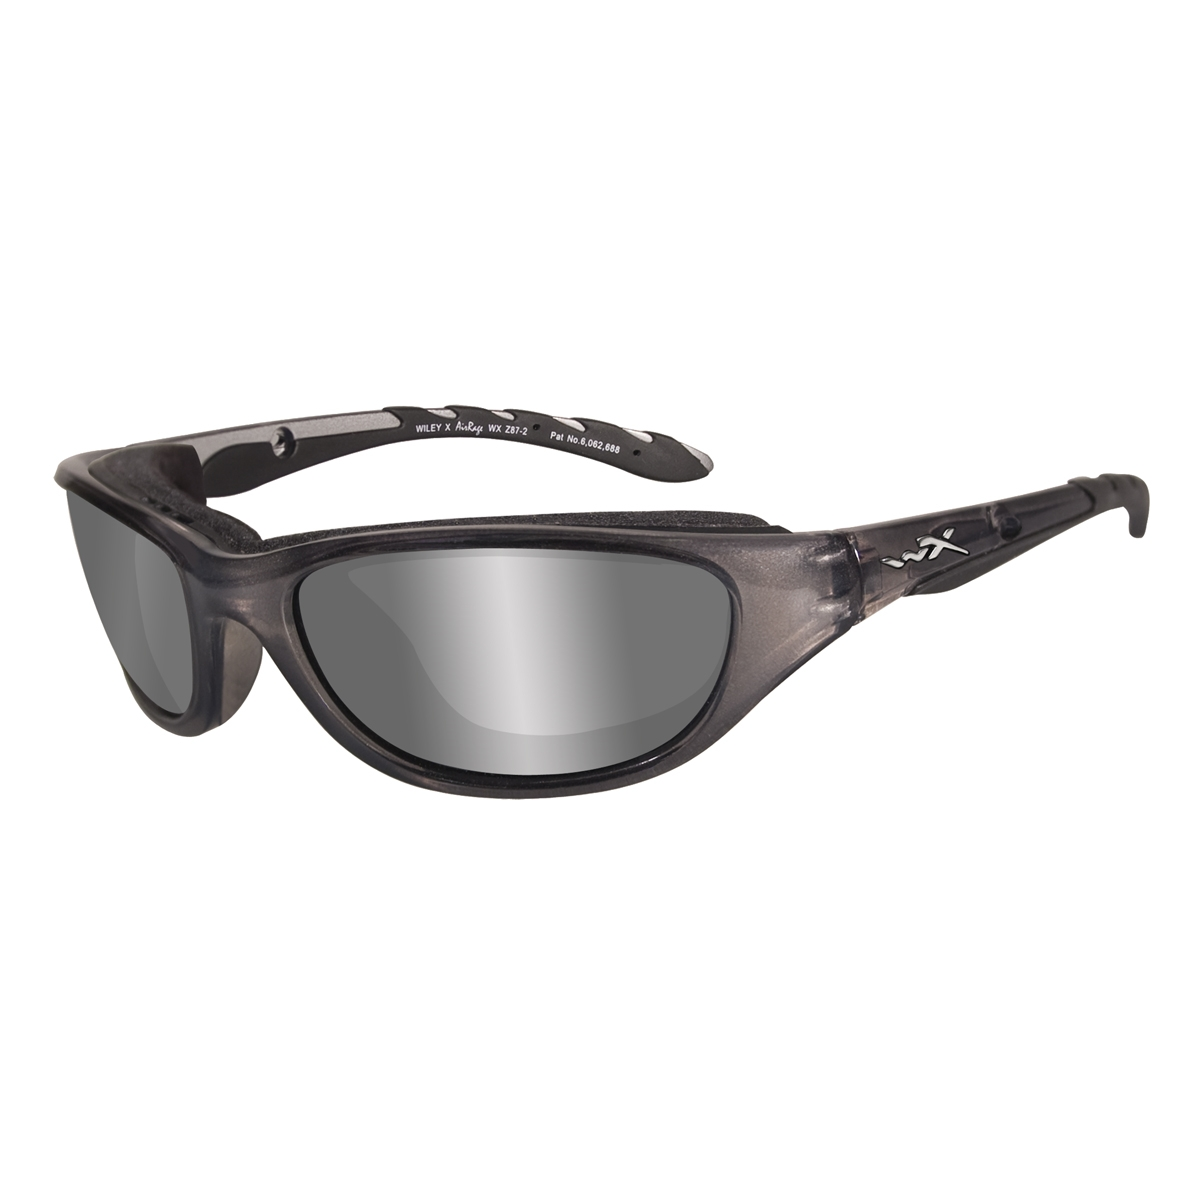 94defedbd6 Wiley X AirRage Sunglasses - Crystal Metallic Frame - Polarized Silver  Flash Lens